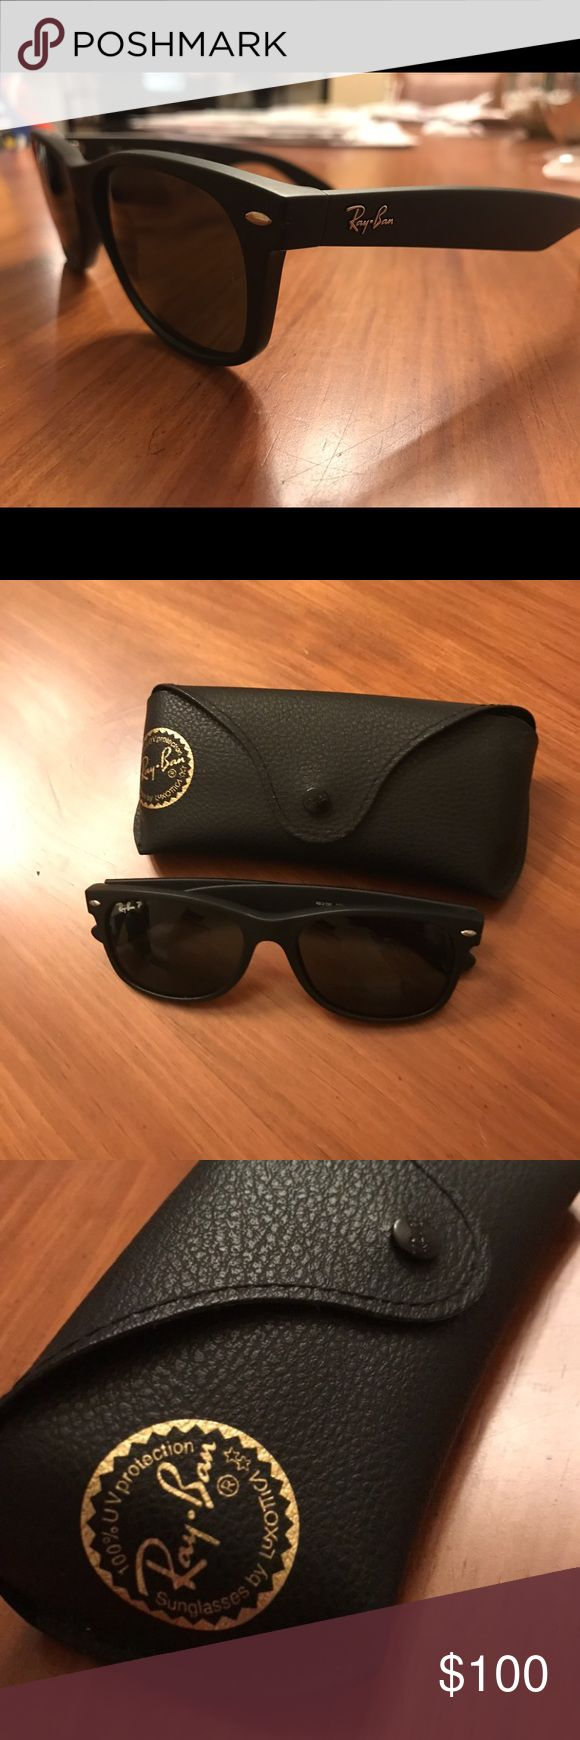 Ray-Ban Wayfarer Original (Polarized) Original Wayfarers that are polarized.  Worn them maybe 5-10 times.  No scratches or marks anywhere on the sunglasses.  Very good condition. Ray-Ban Accessories Sunglasses